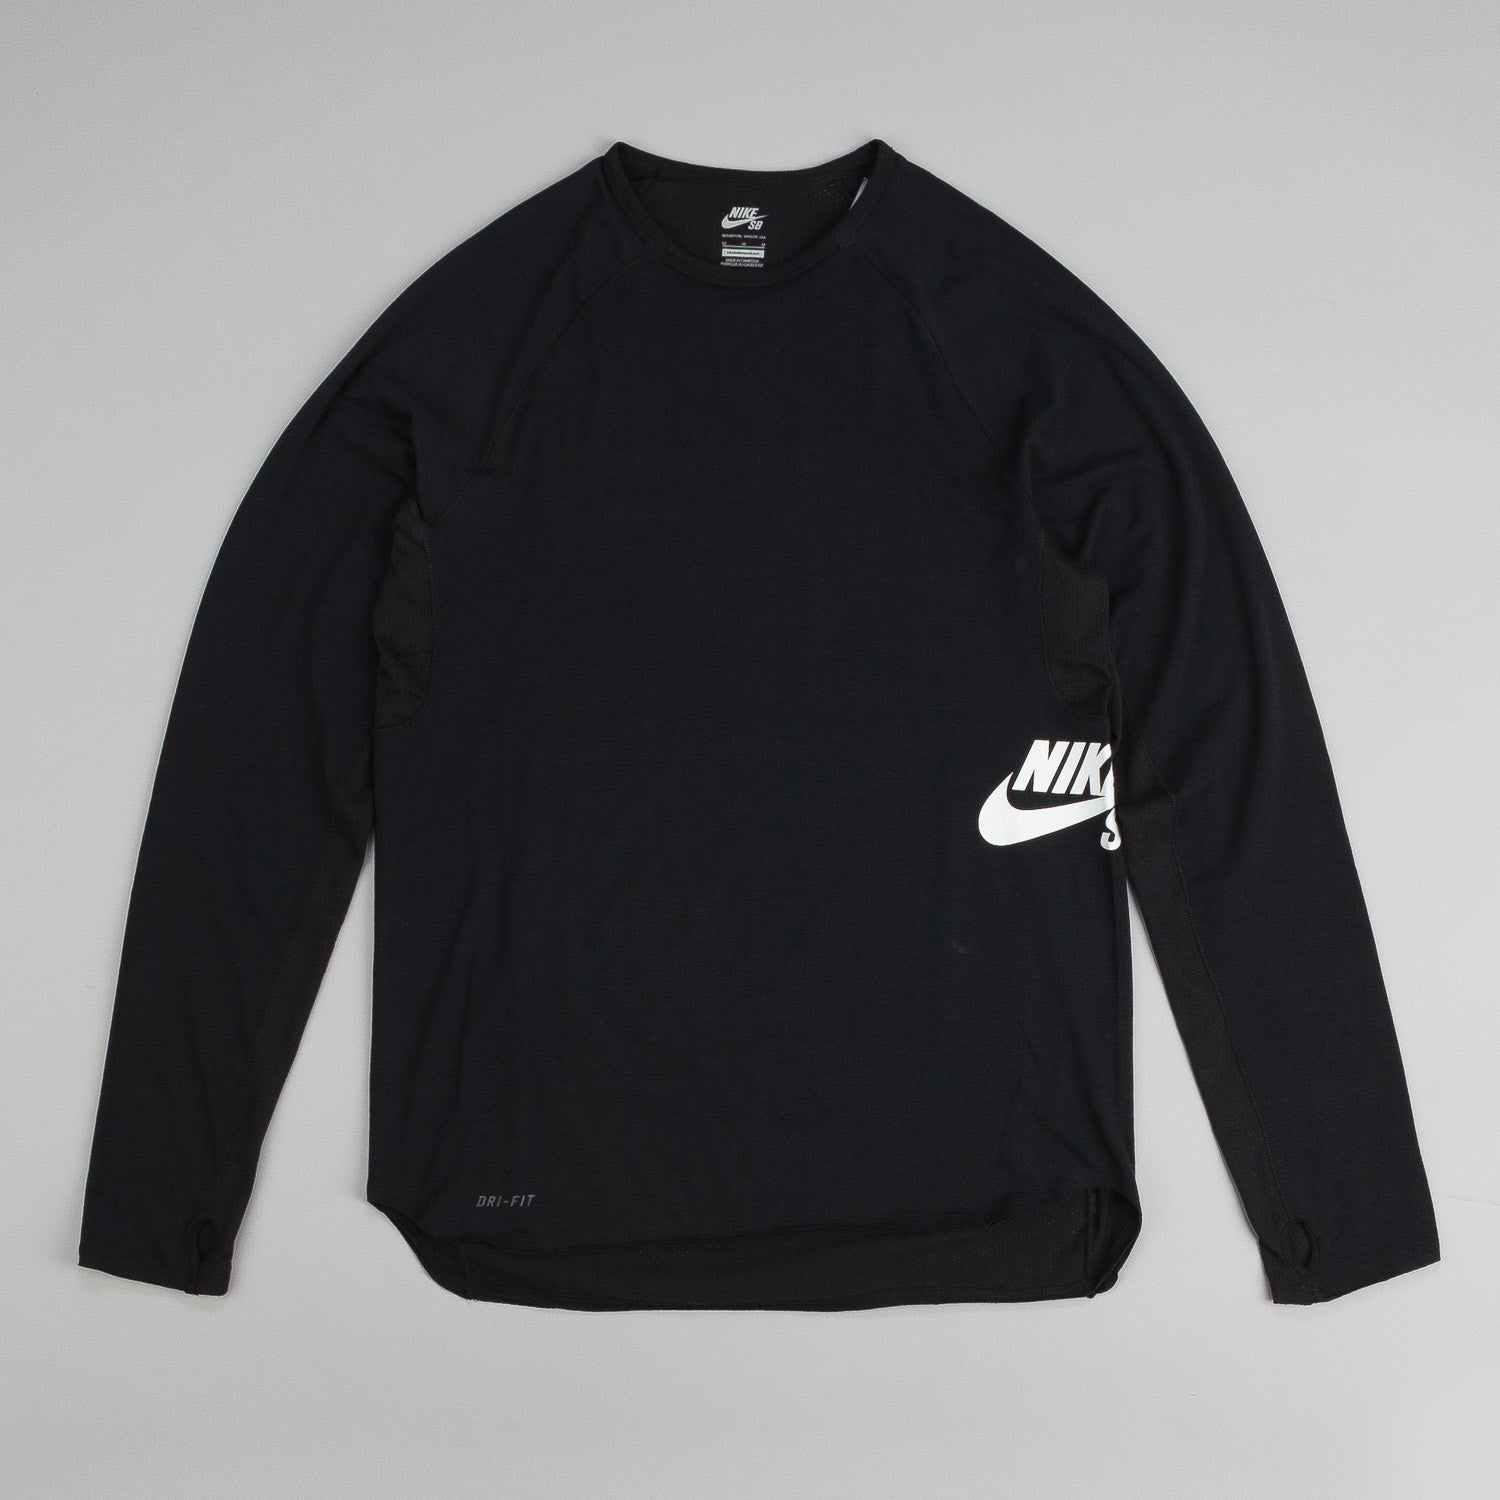 Nike SB Dri-Fit Skyline Block Crew Long Sleeve T-Shirt